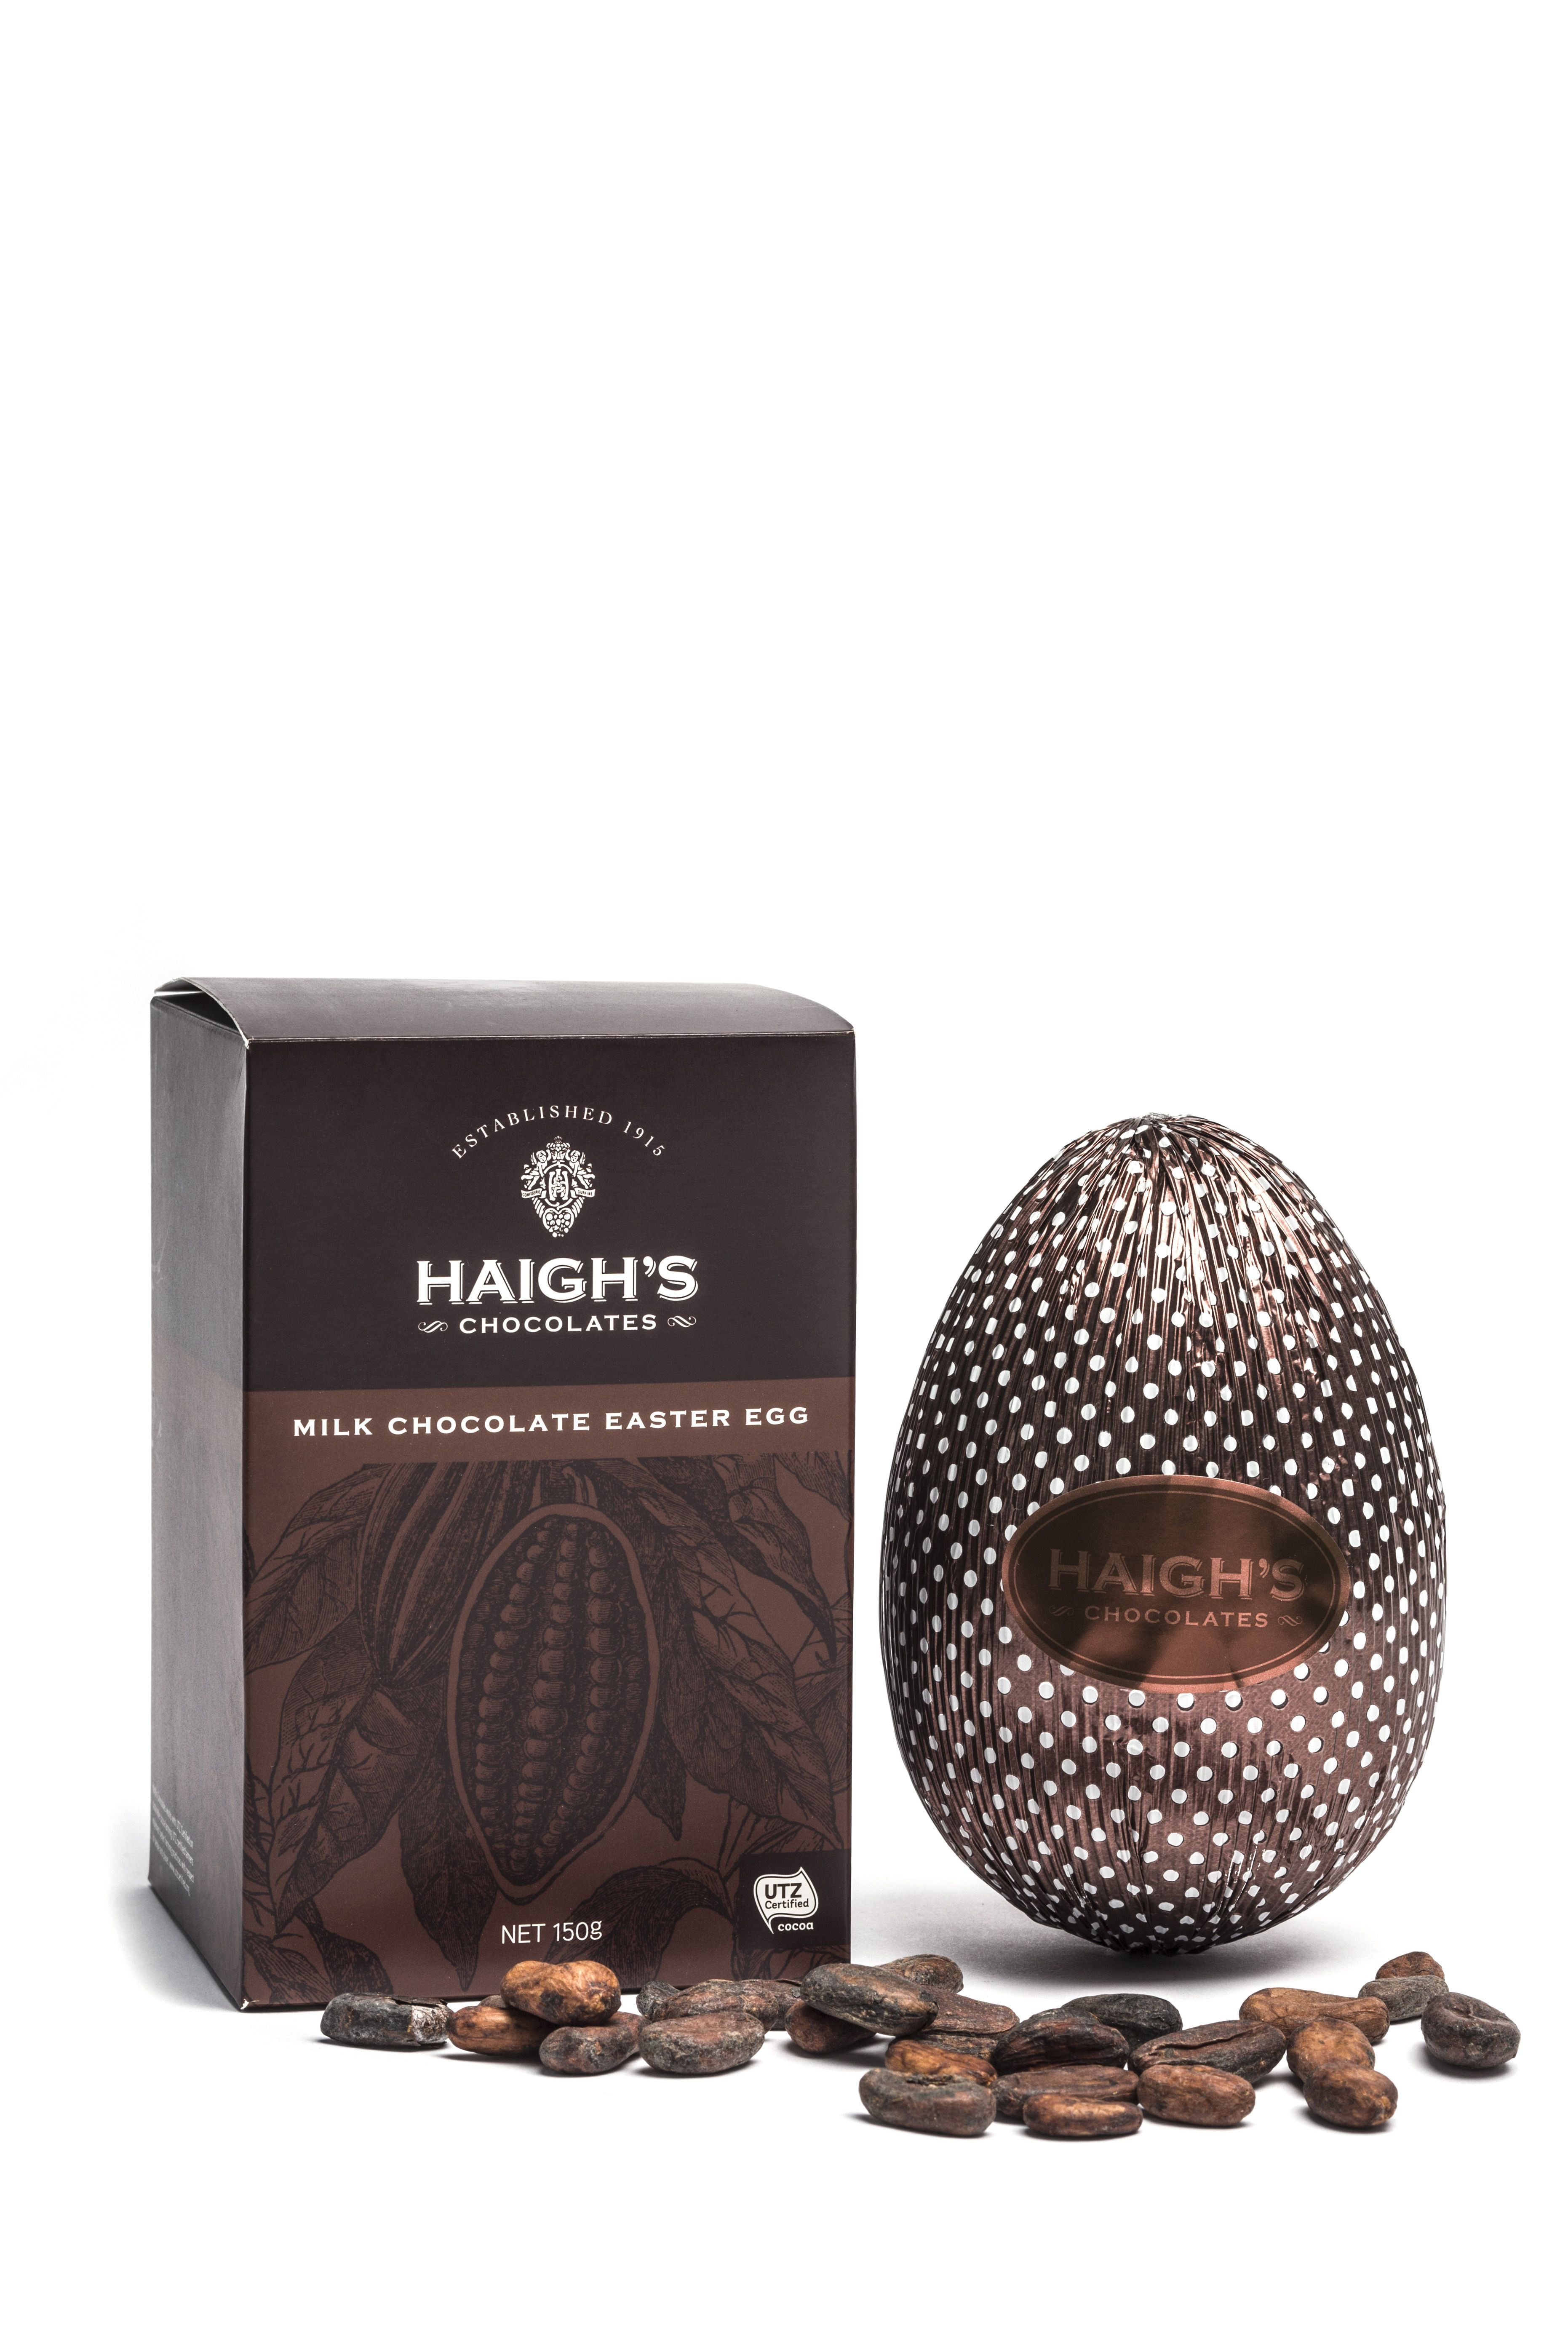 Our utz easter egg is available again this year purchase online our utz easter egg is available again this year purchase online instore and mobile negle Images